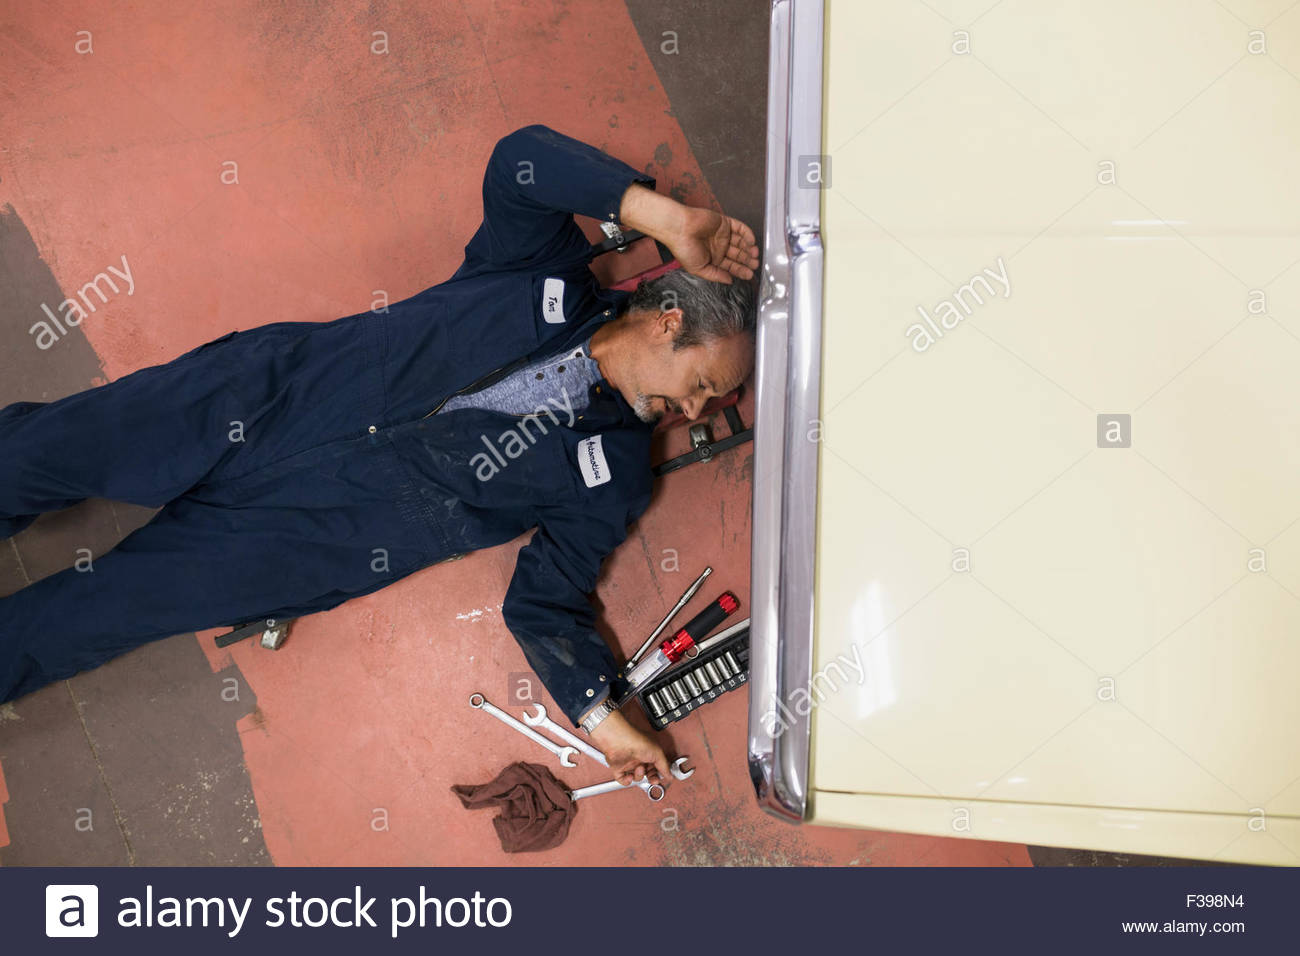 Overhead view mechanic reaching for tool underneath car - Stock Image